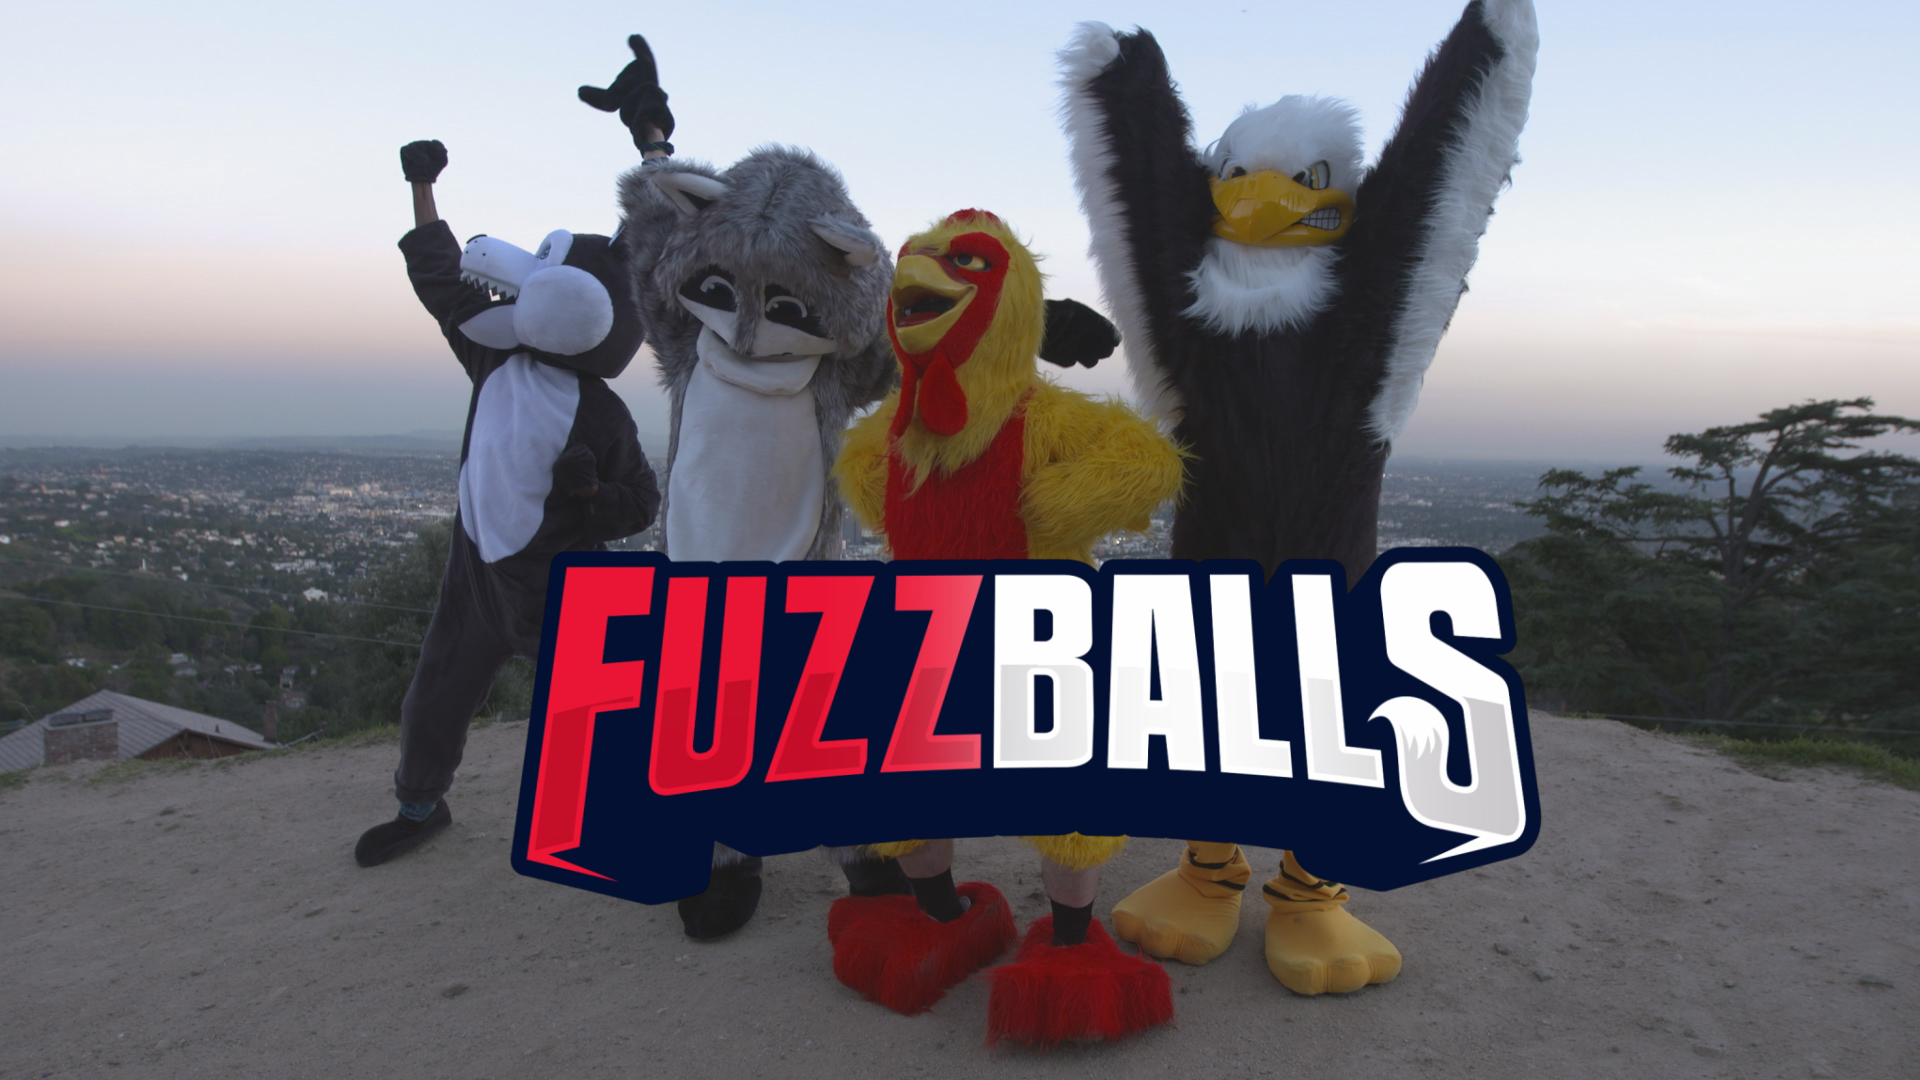 "FUZZ BALLS  (FACEBOOK)  From the dawn of time, humans have been messing with animals. Now its time for humans in animal costumes to mess with humans! In the series ""Fuzz Balls,"" a team of social media pranksters dress as animals and challenge one another in hidden camera segments to mess with humans. At the end of each episode, the losing prankster faces a humiliating punishment. Ten ten-minute episodes aired in April 2019 on Facebook Watch."